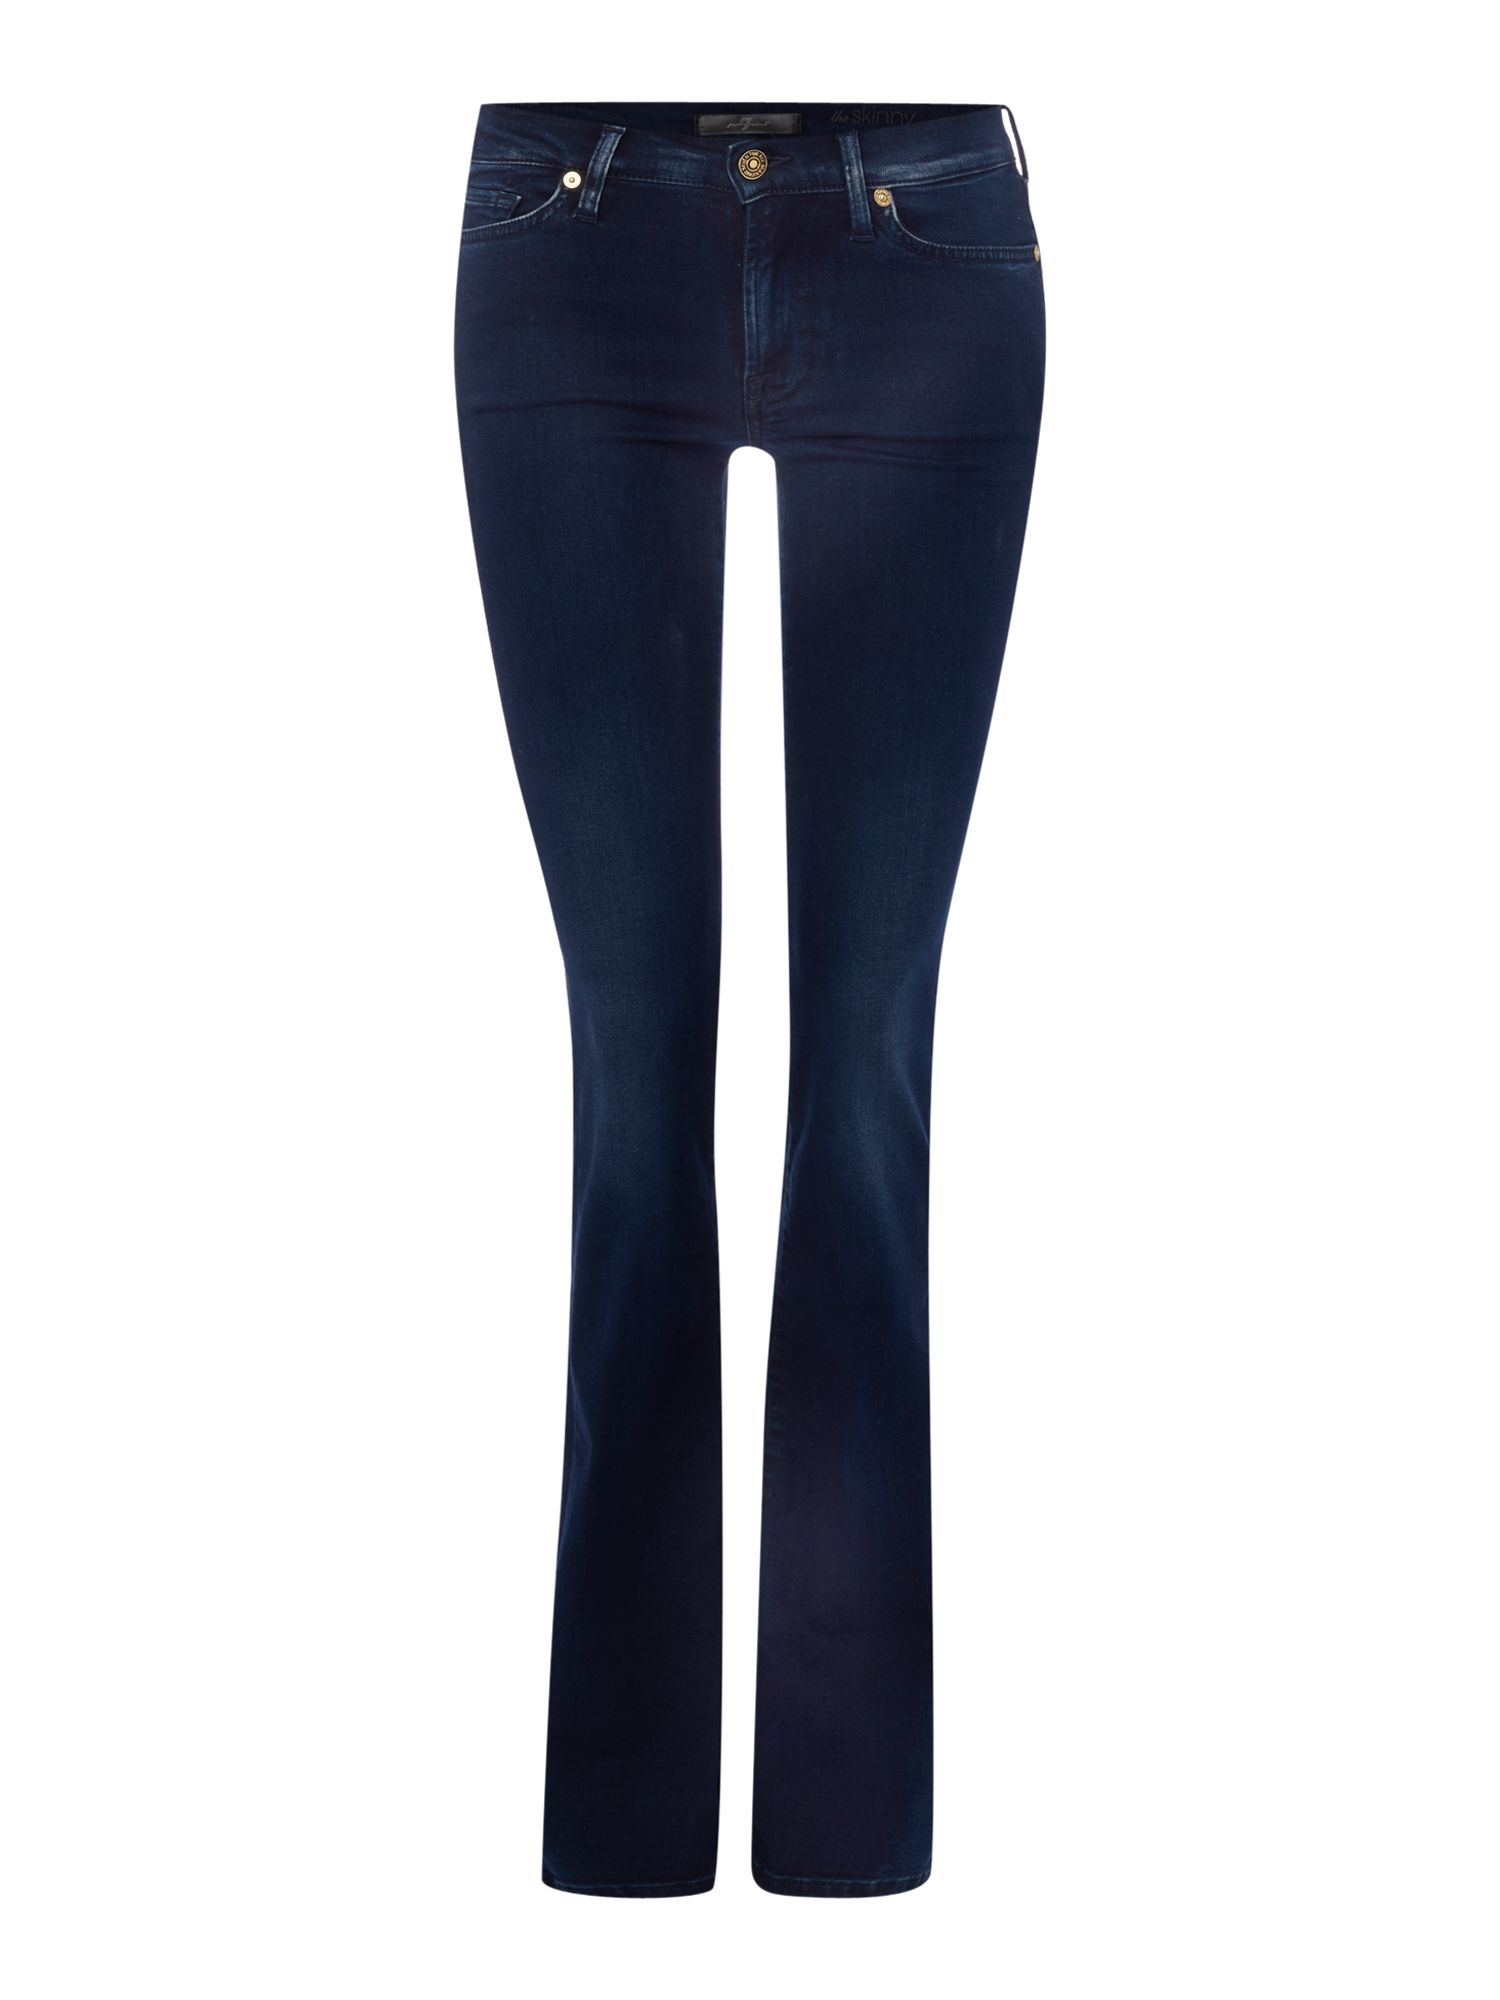 7 for all mankind slim illusion skinny bootcut jean in. Black Bedroom Furniture Sets. Home Design Ideas